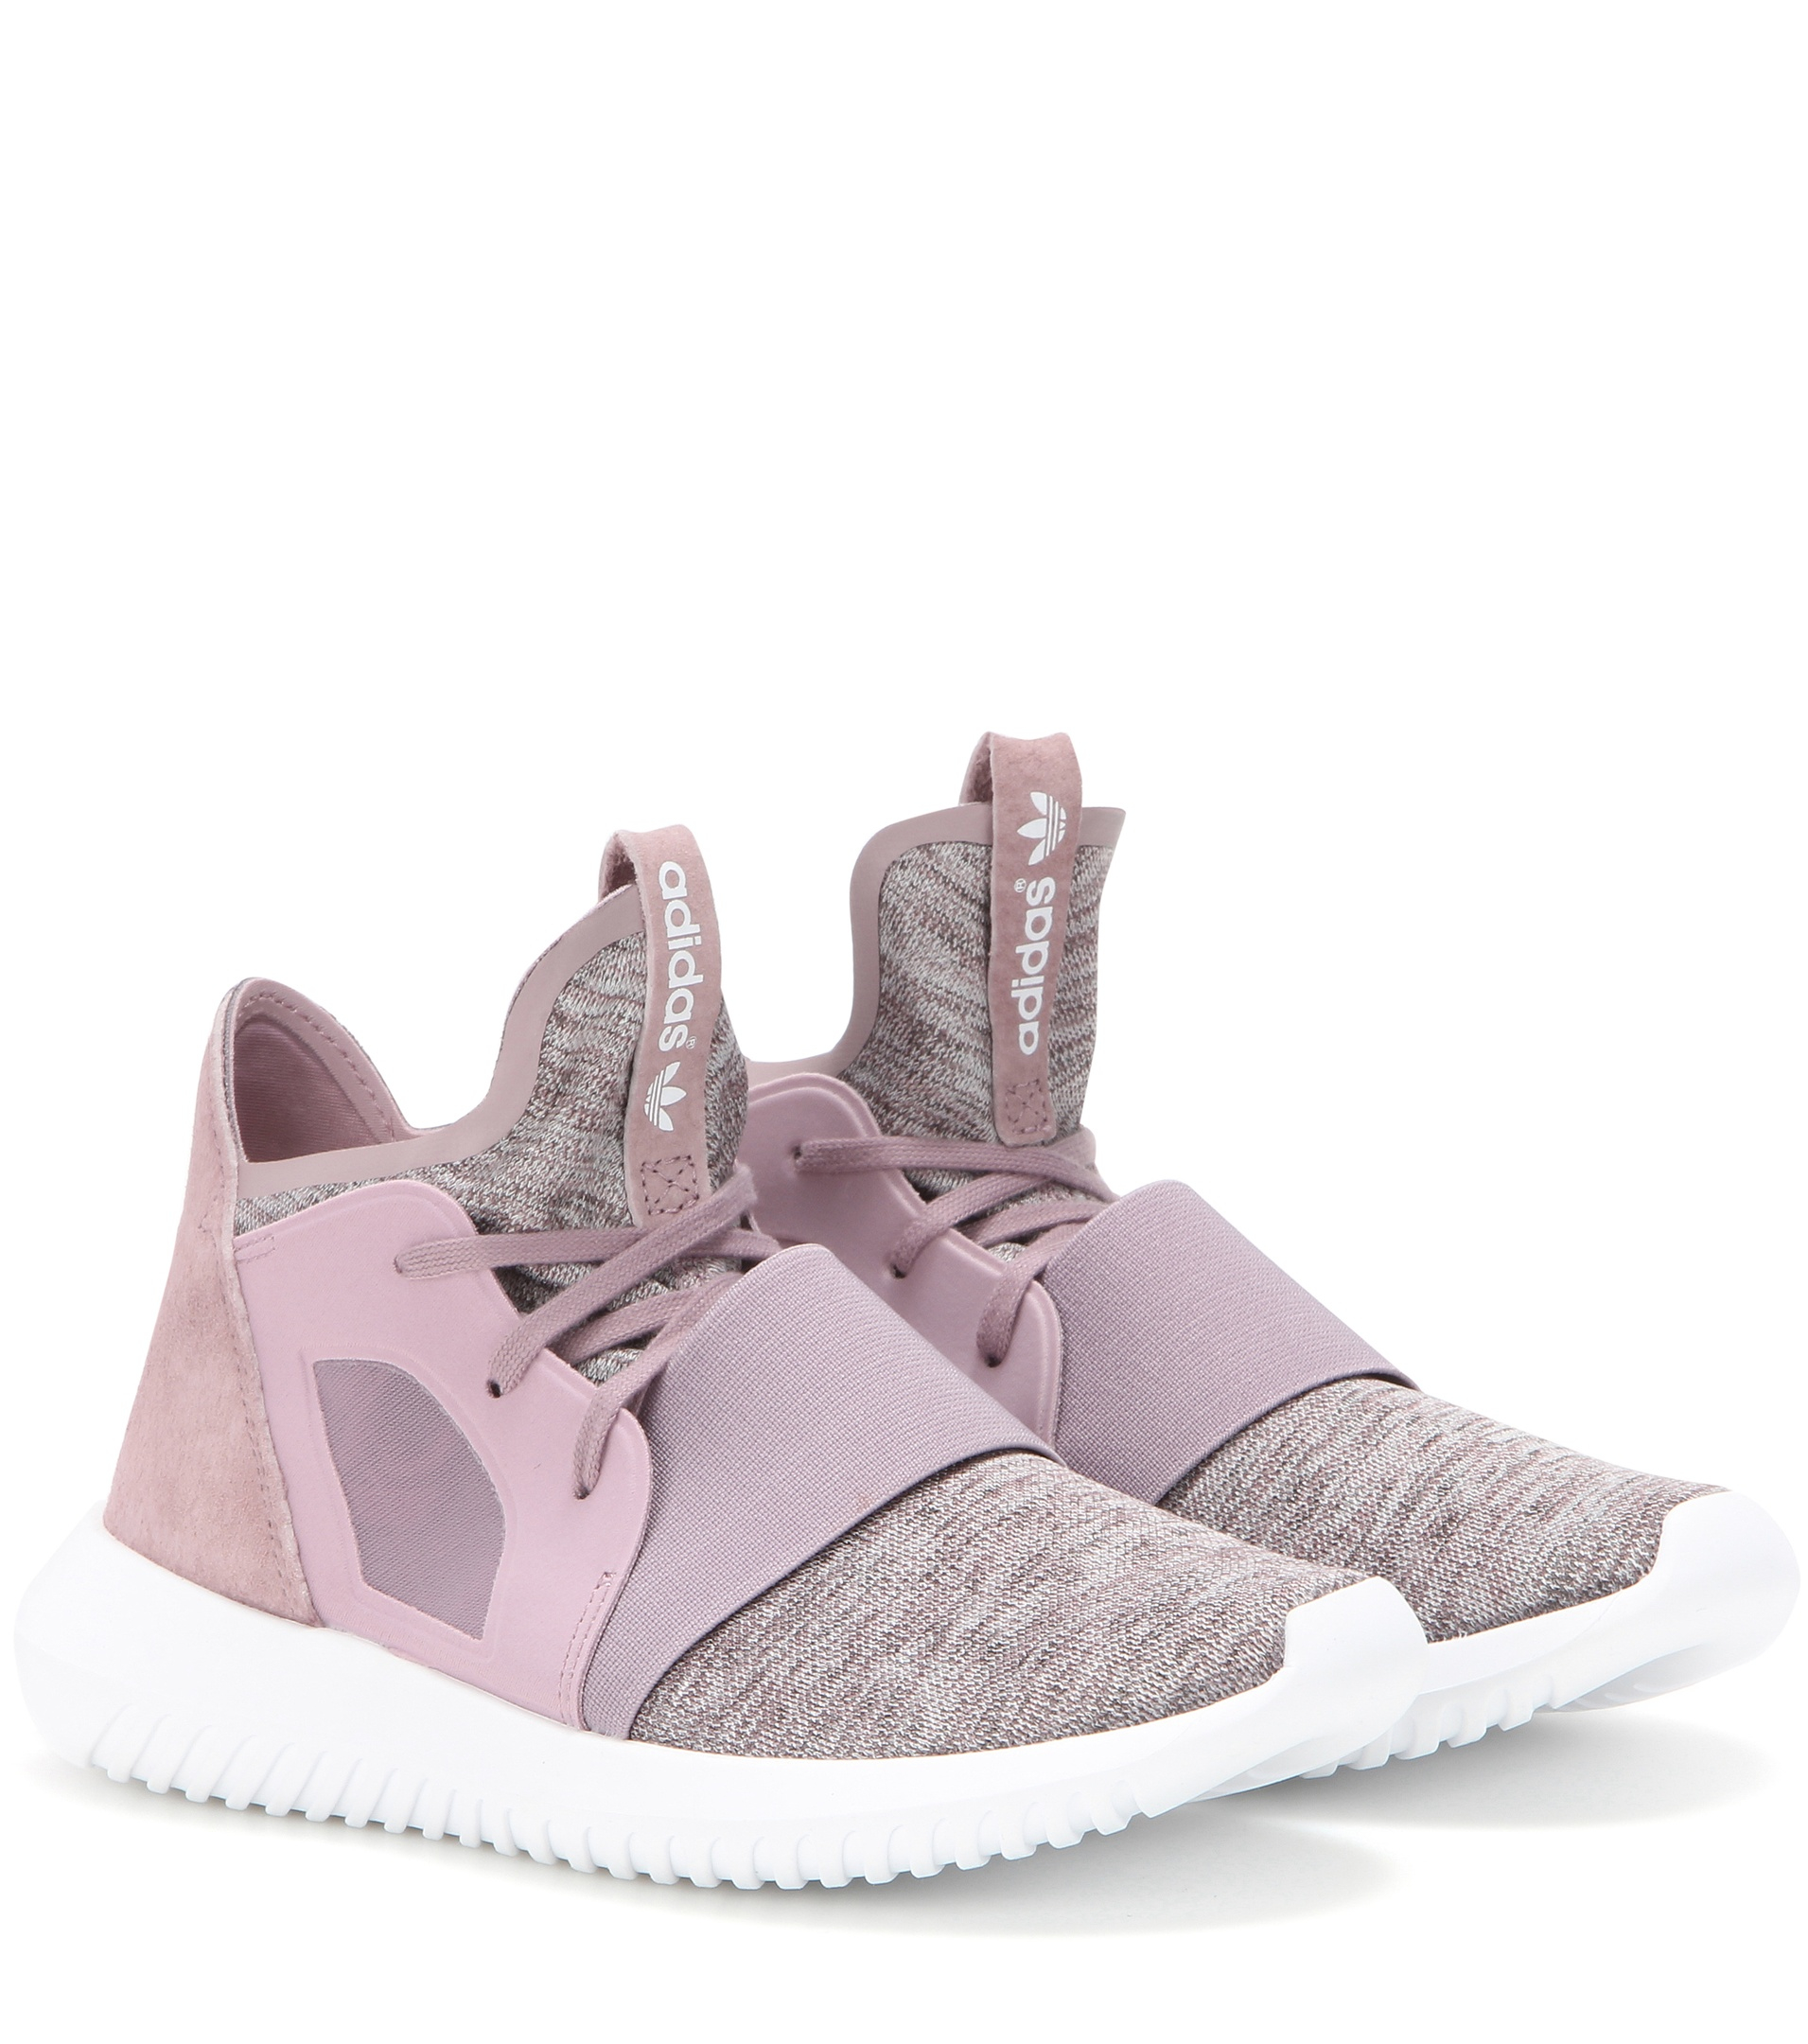 finest selection 17e39 da809 adidas Originals Tubular Defiant Sneakers in Gray - Lyst